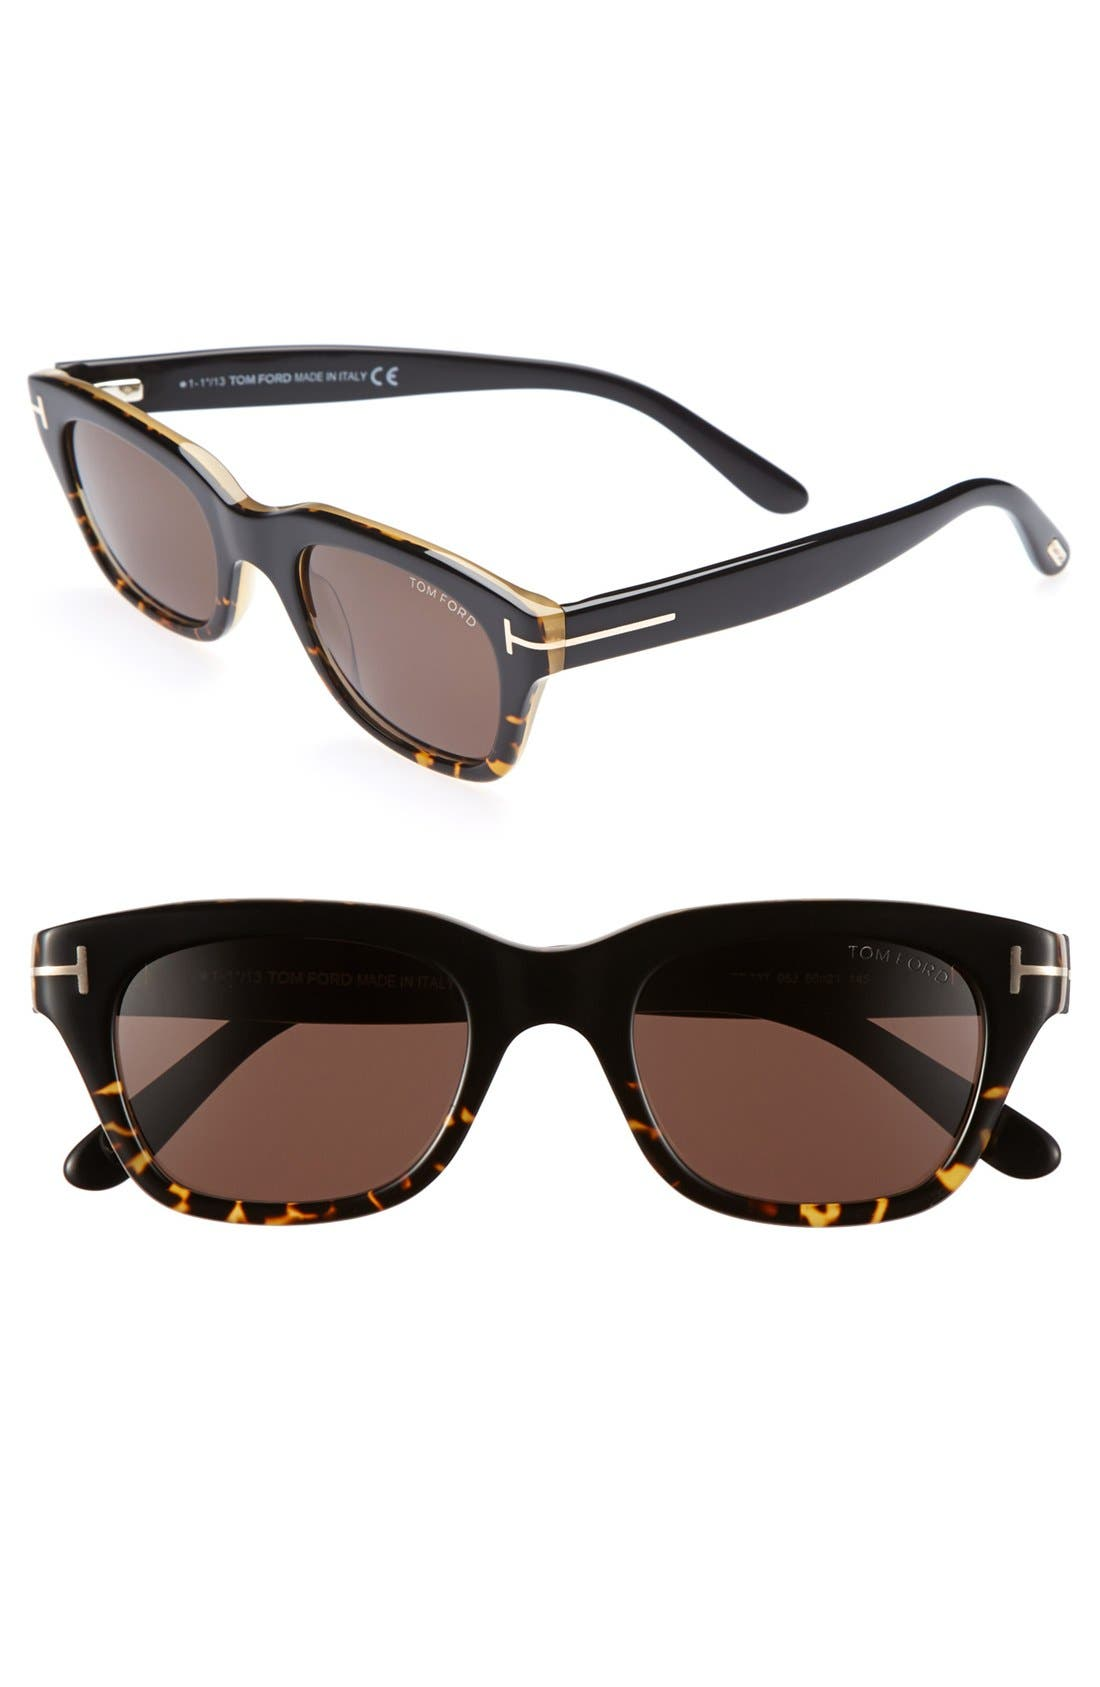 Main Image - Tom Ford 'Snowdon' 50mm Sunglasses